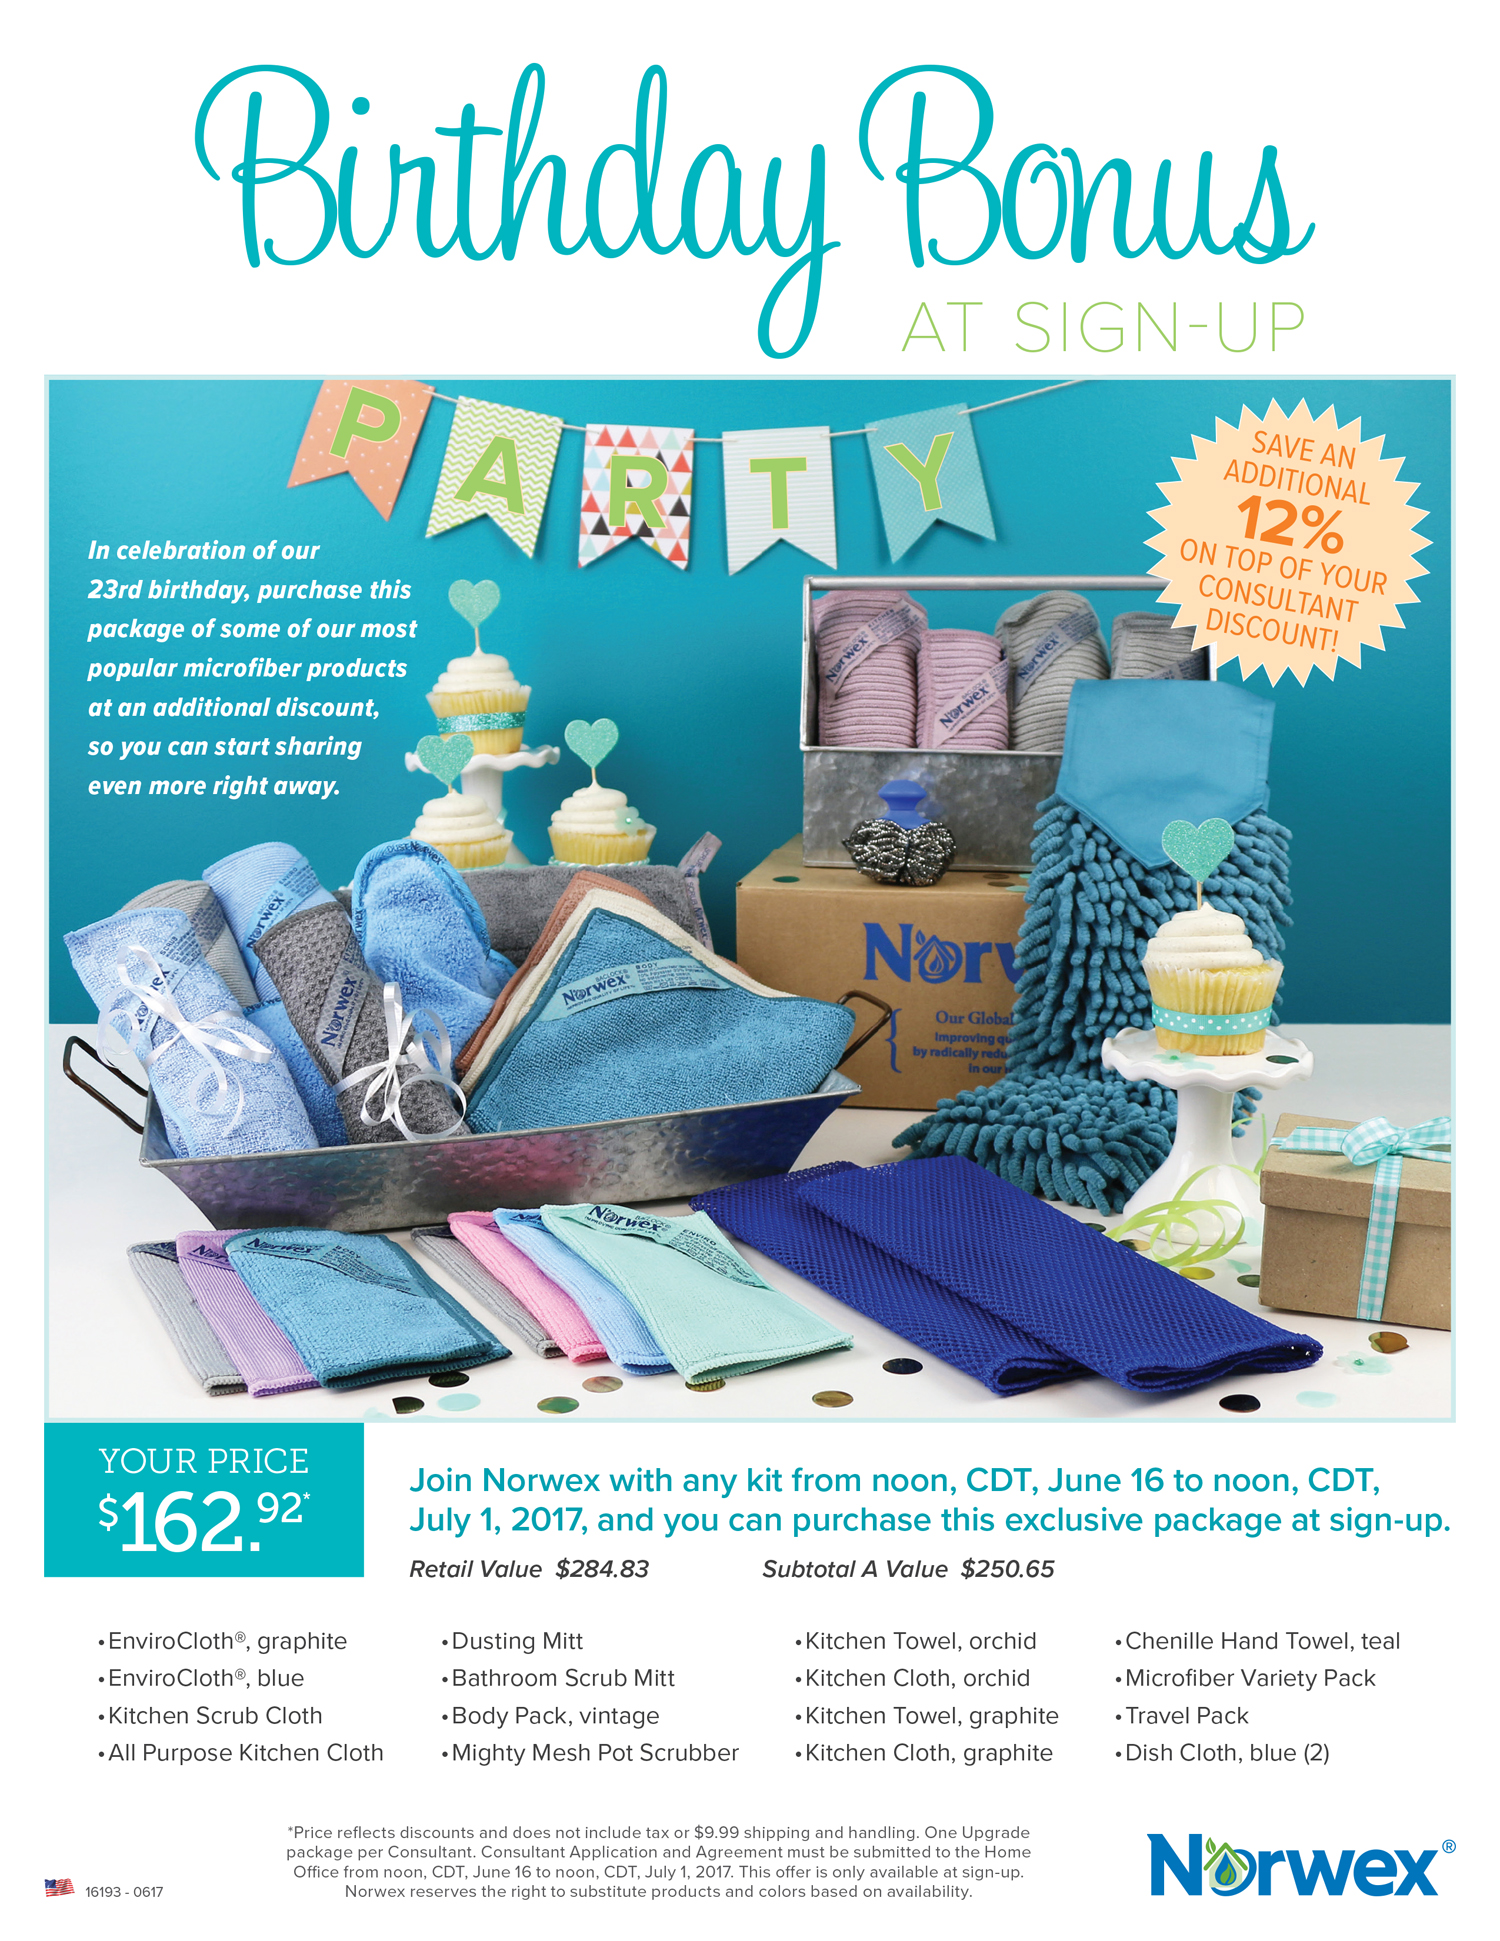 _cms-media_media-manager_norwex-images_jff_birthday_bonus_us